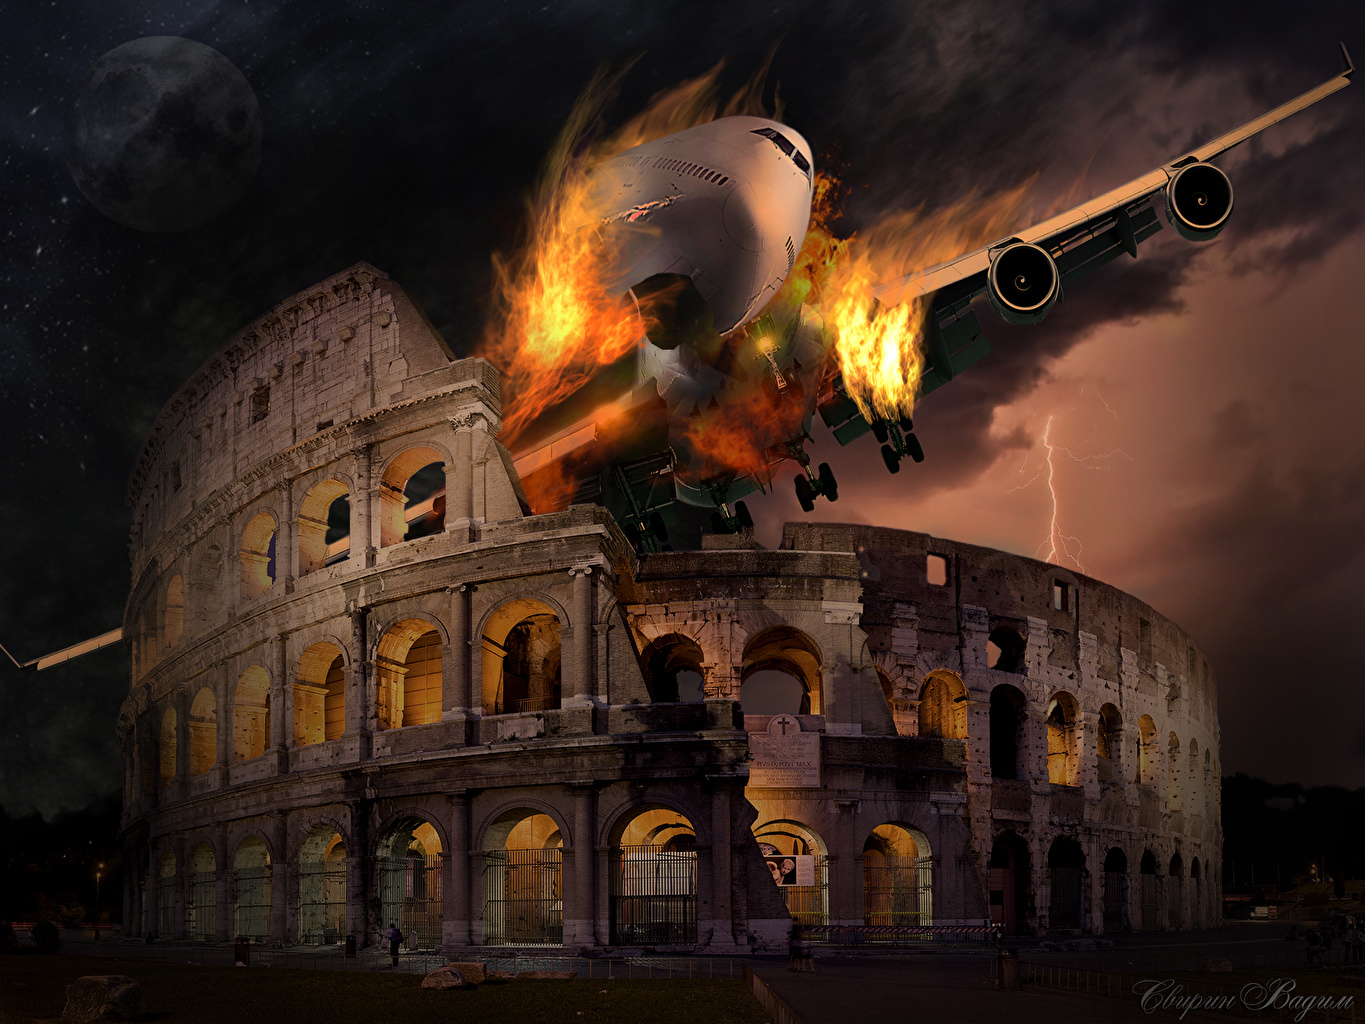 Pictures Rome Colosseum Italy Arch Fantasy disaster Cities Disasters